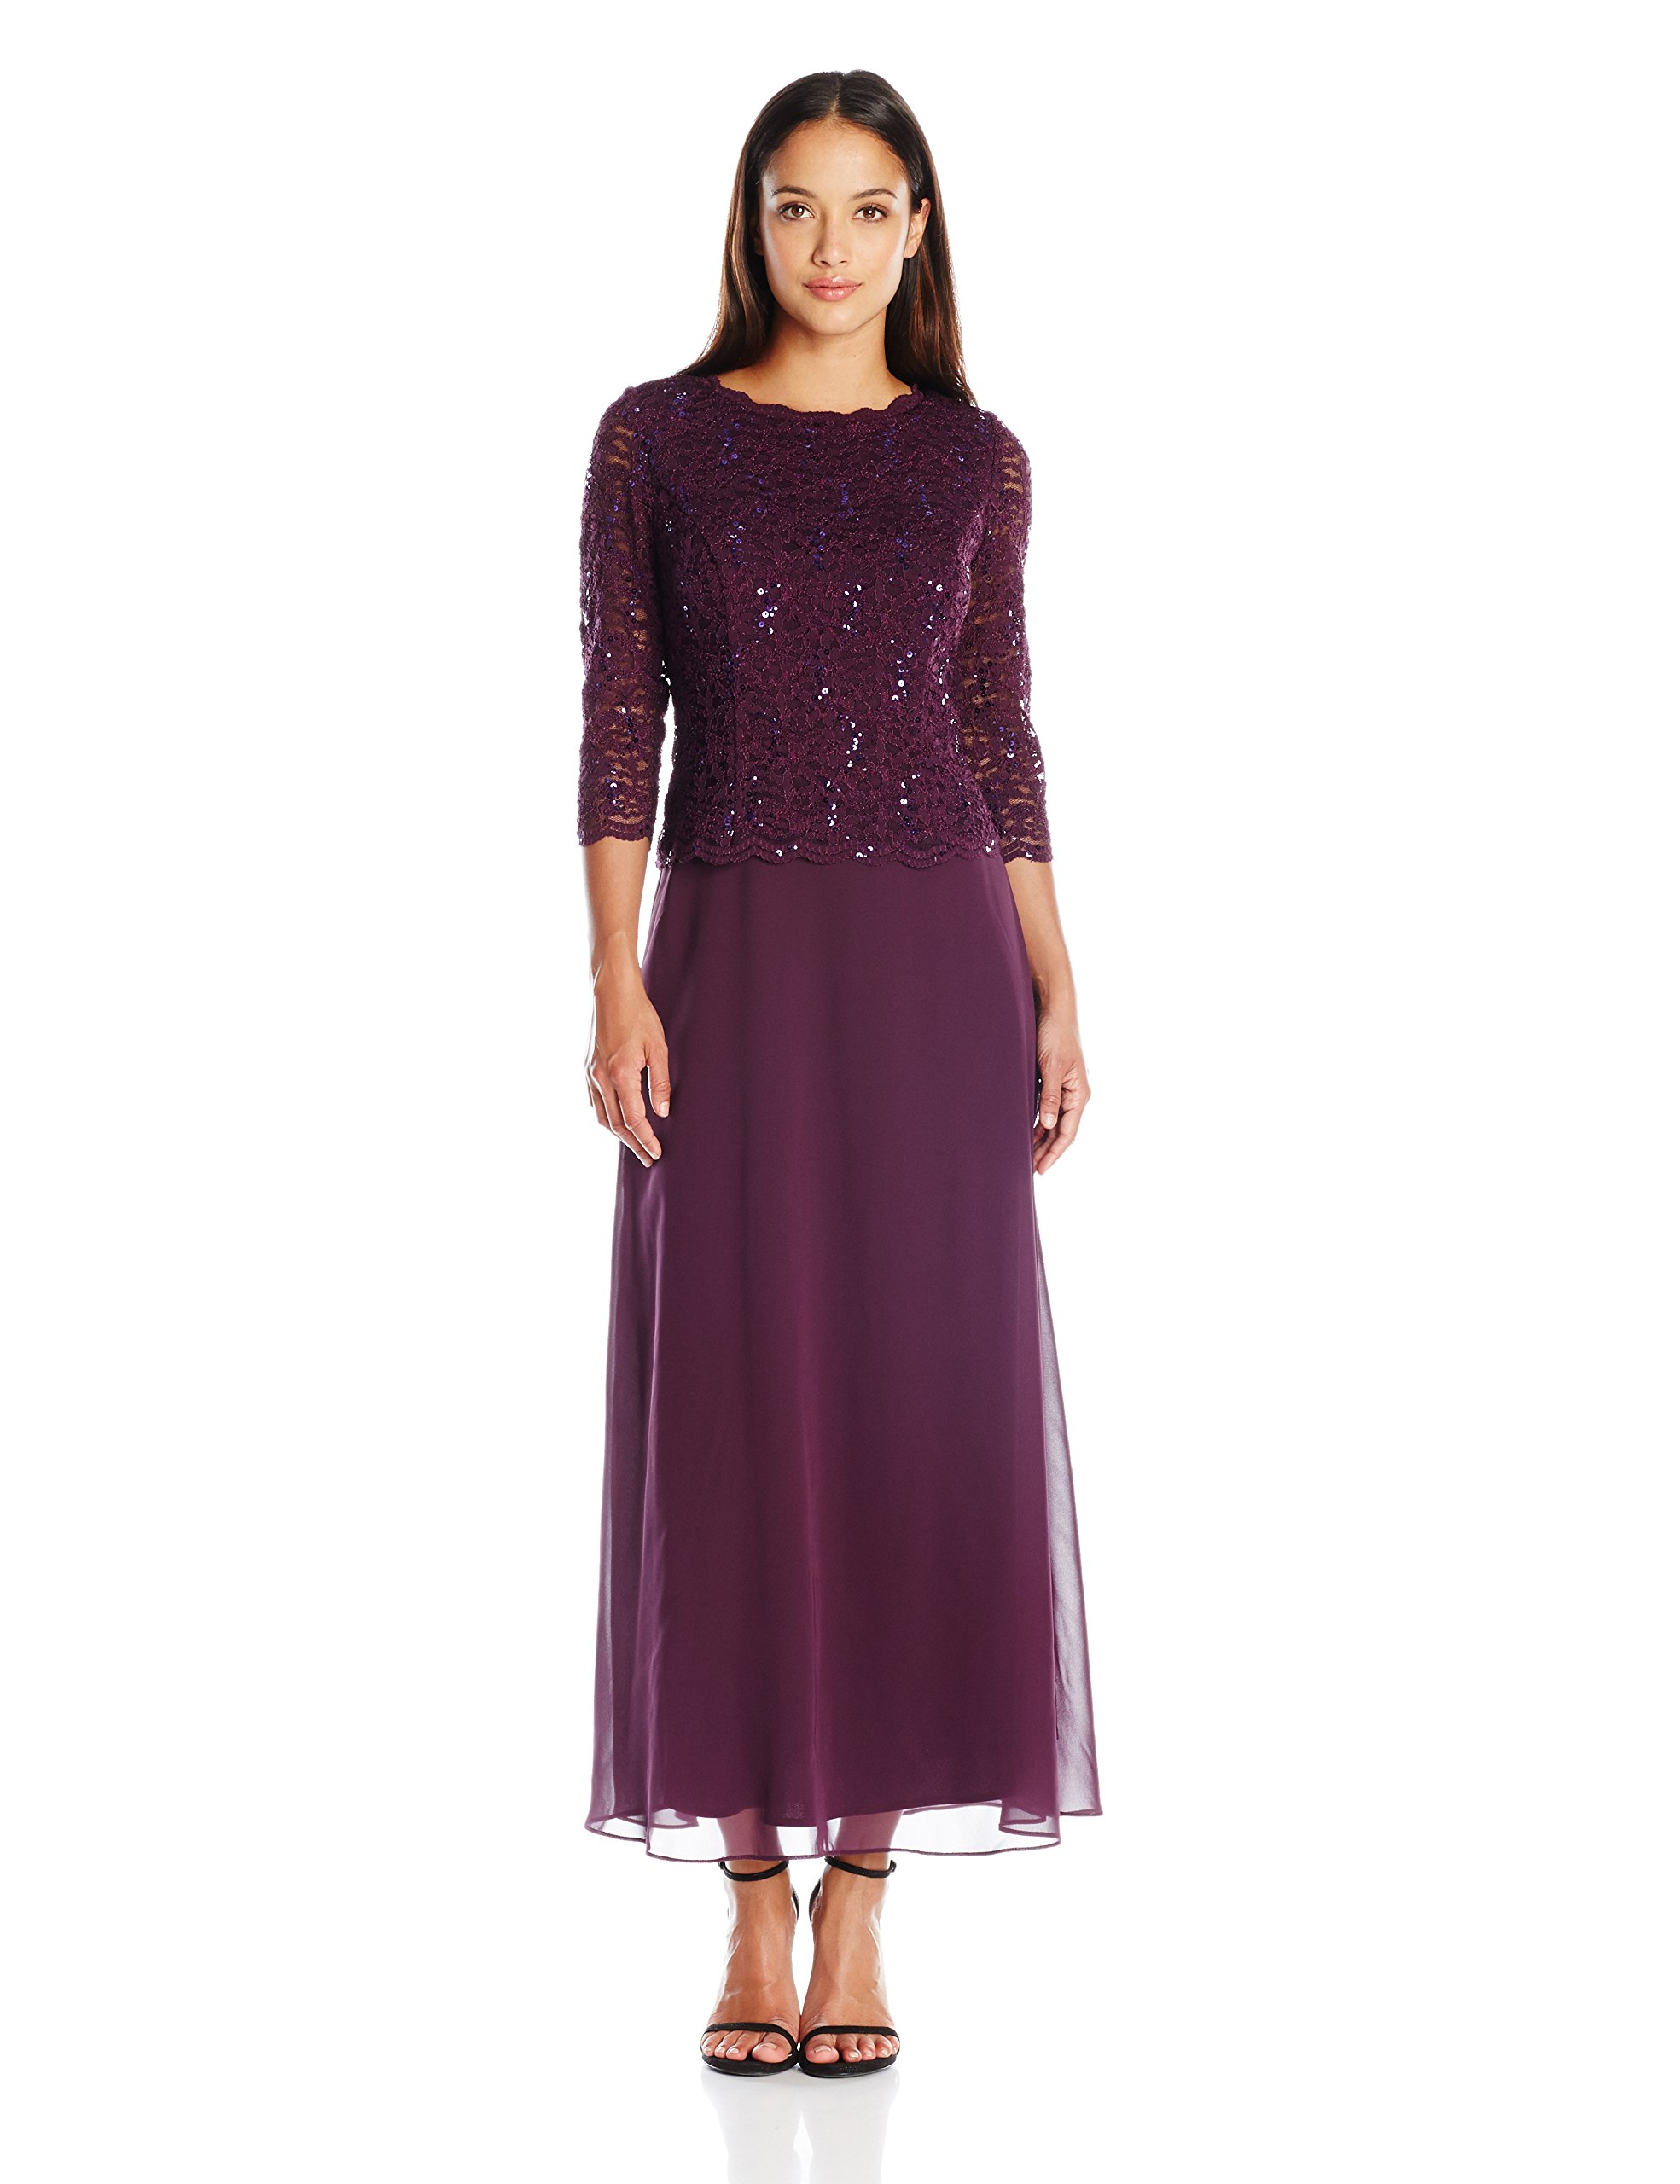 Alex Evenings Women's Petite Long Mock Dress With Lace and Illusion 3/4 Sleeves, Deep Plum, 12 Petite